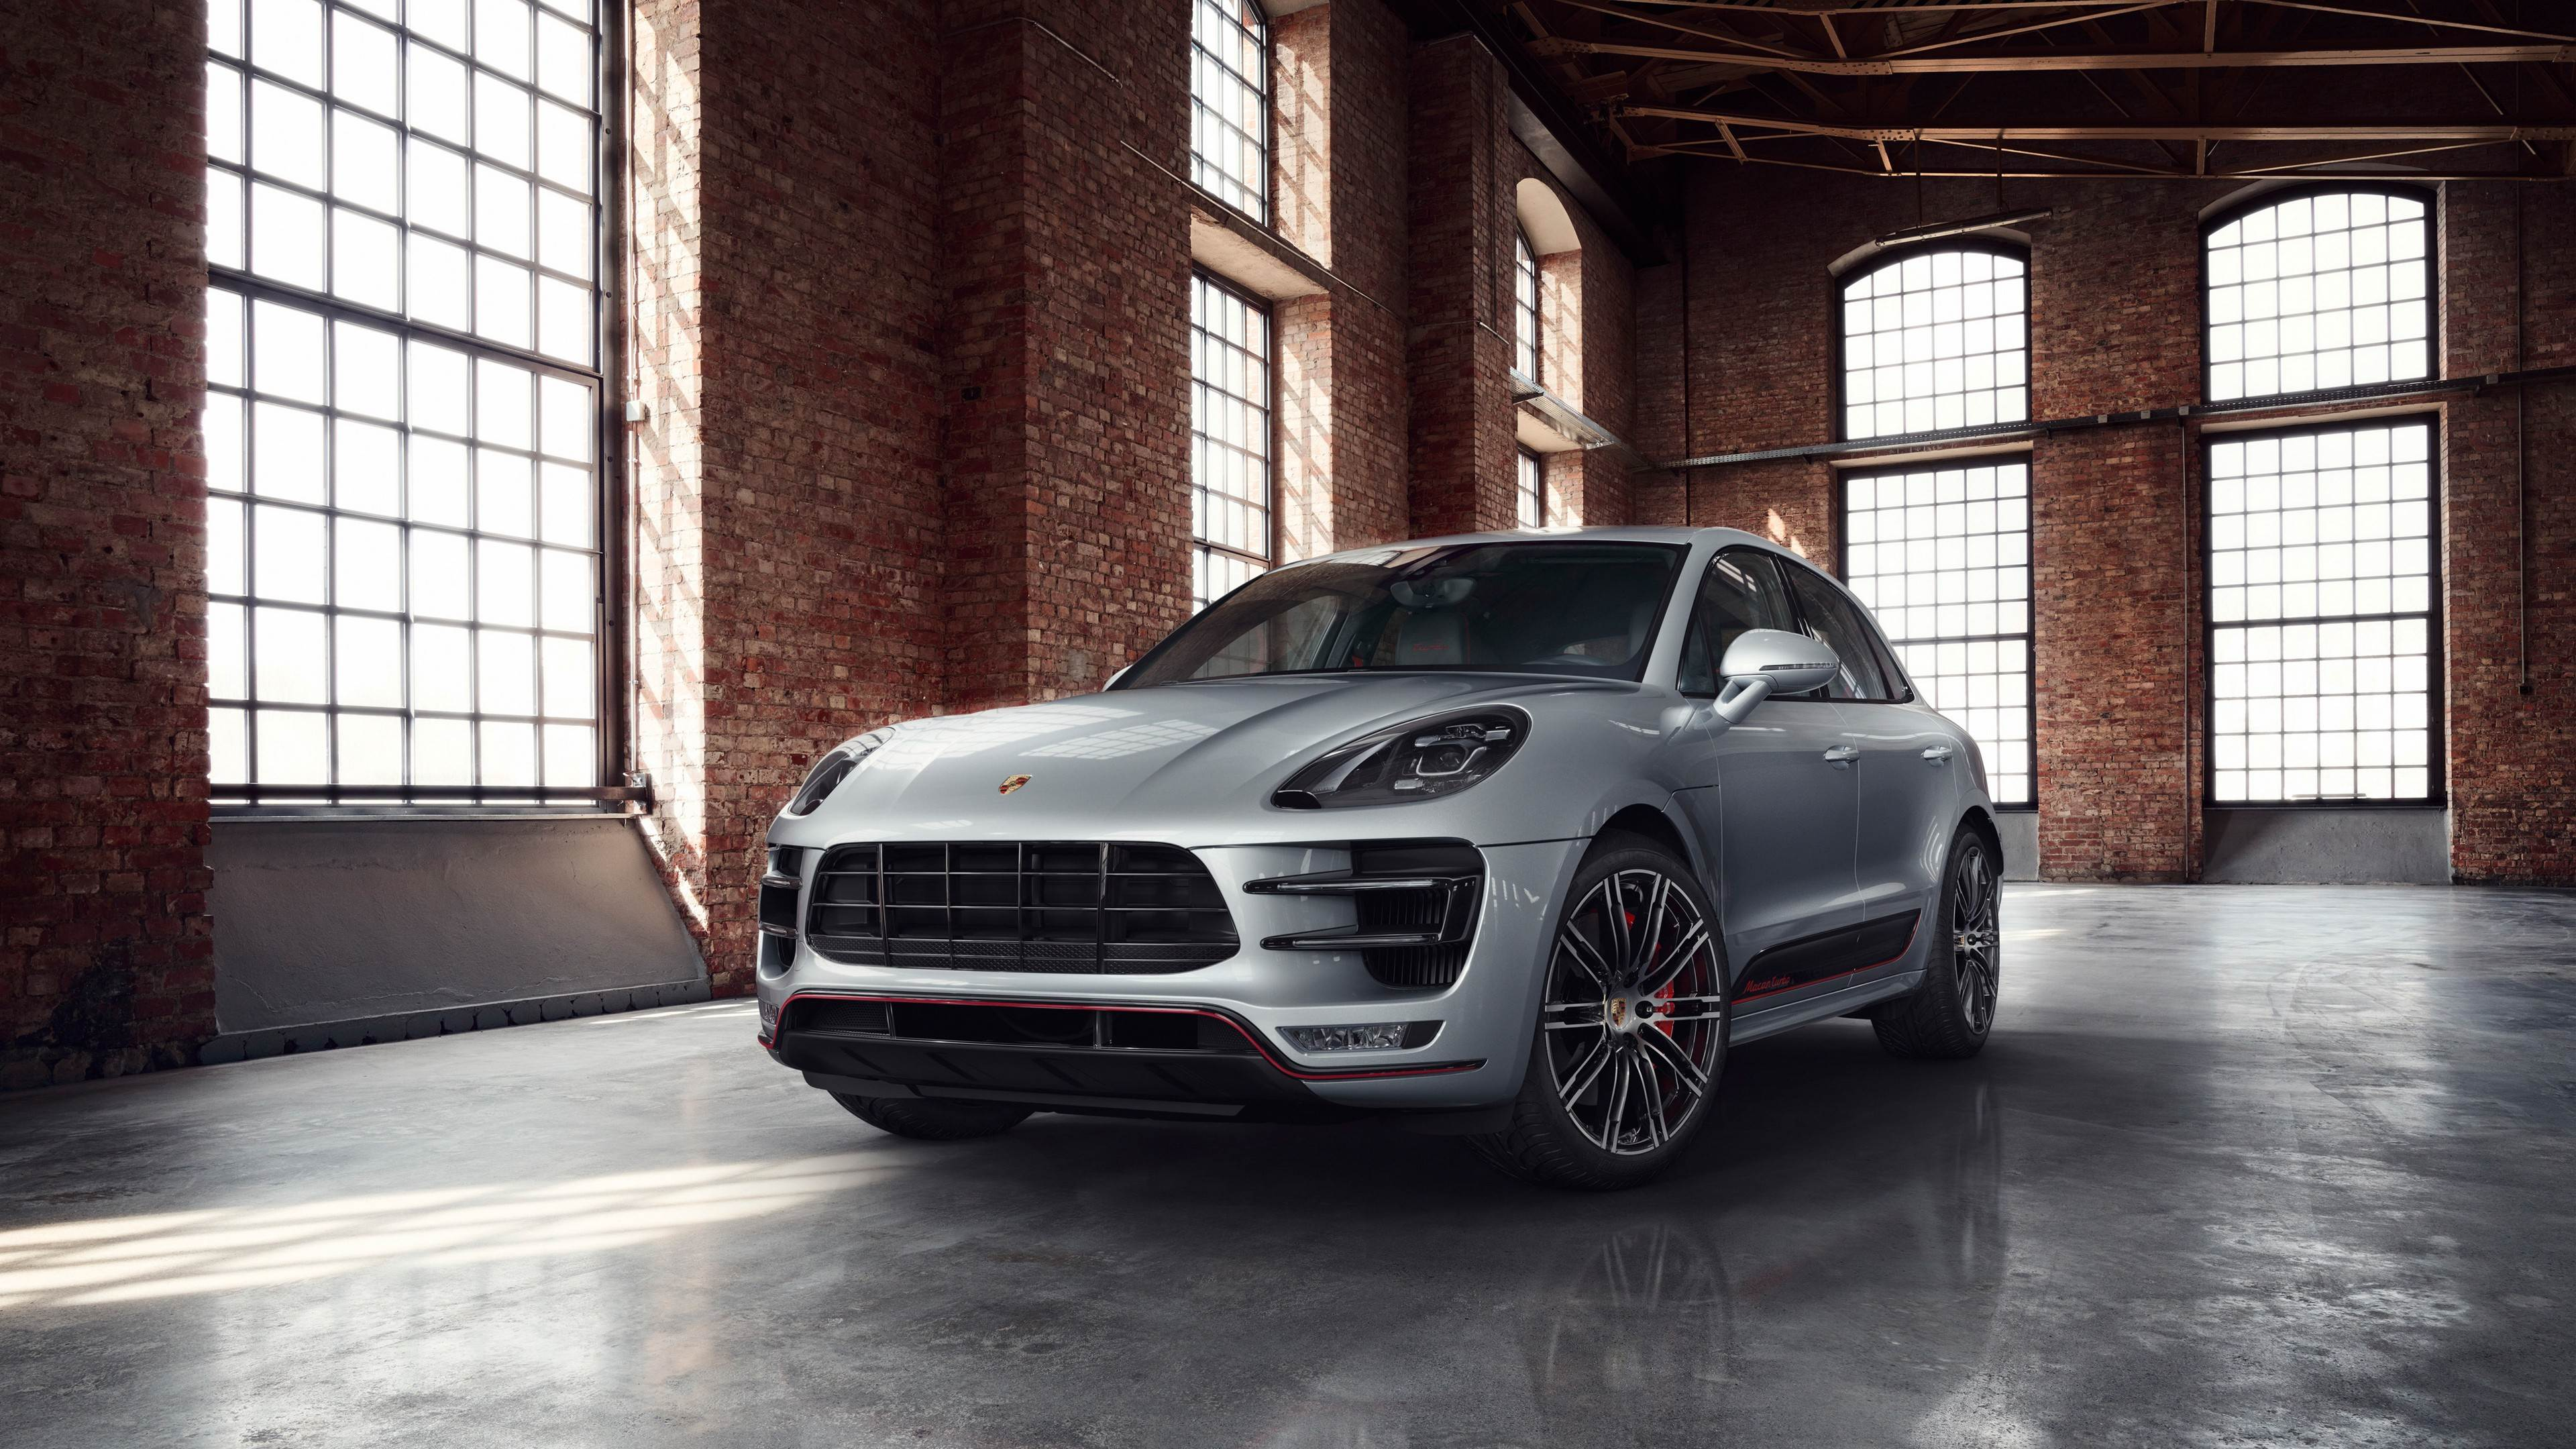 Porsche Macan Turbo Performance Edition 2017 Wallpaper